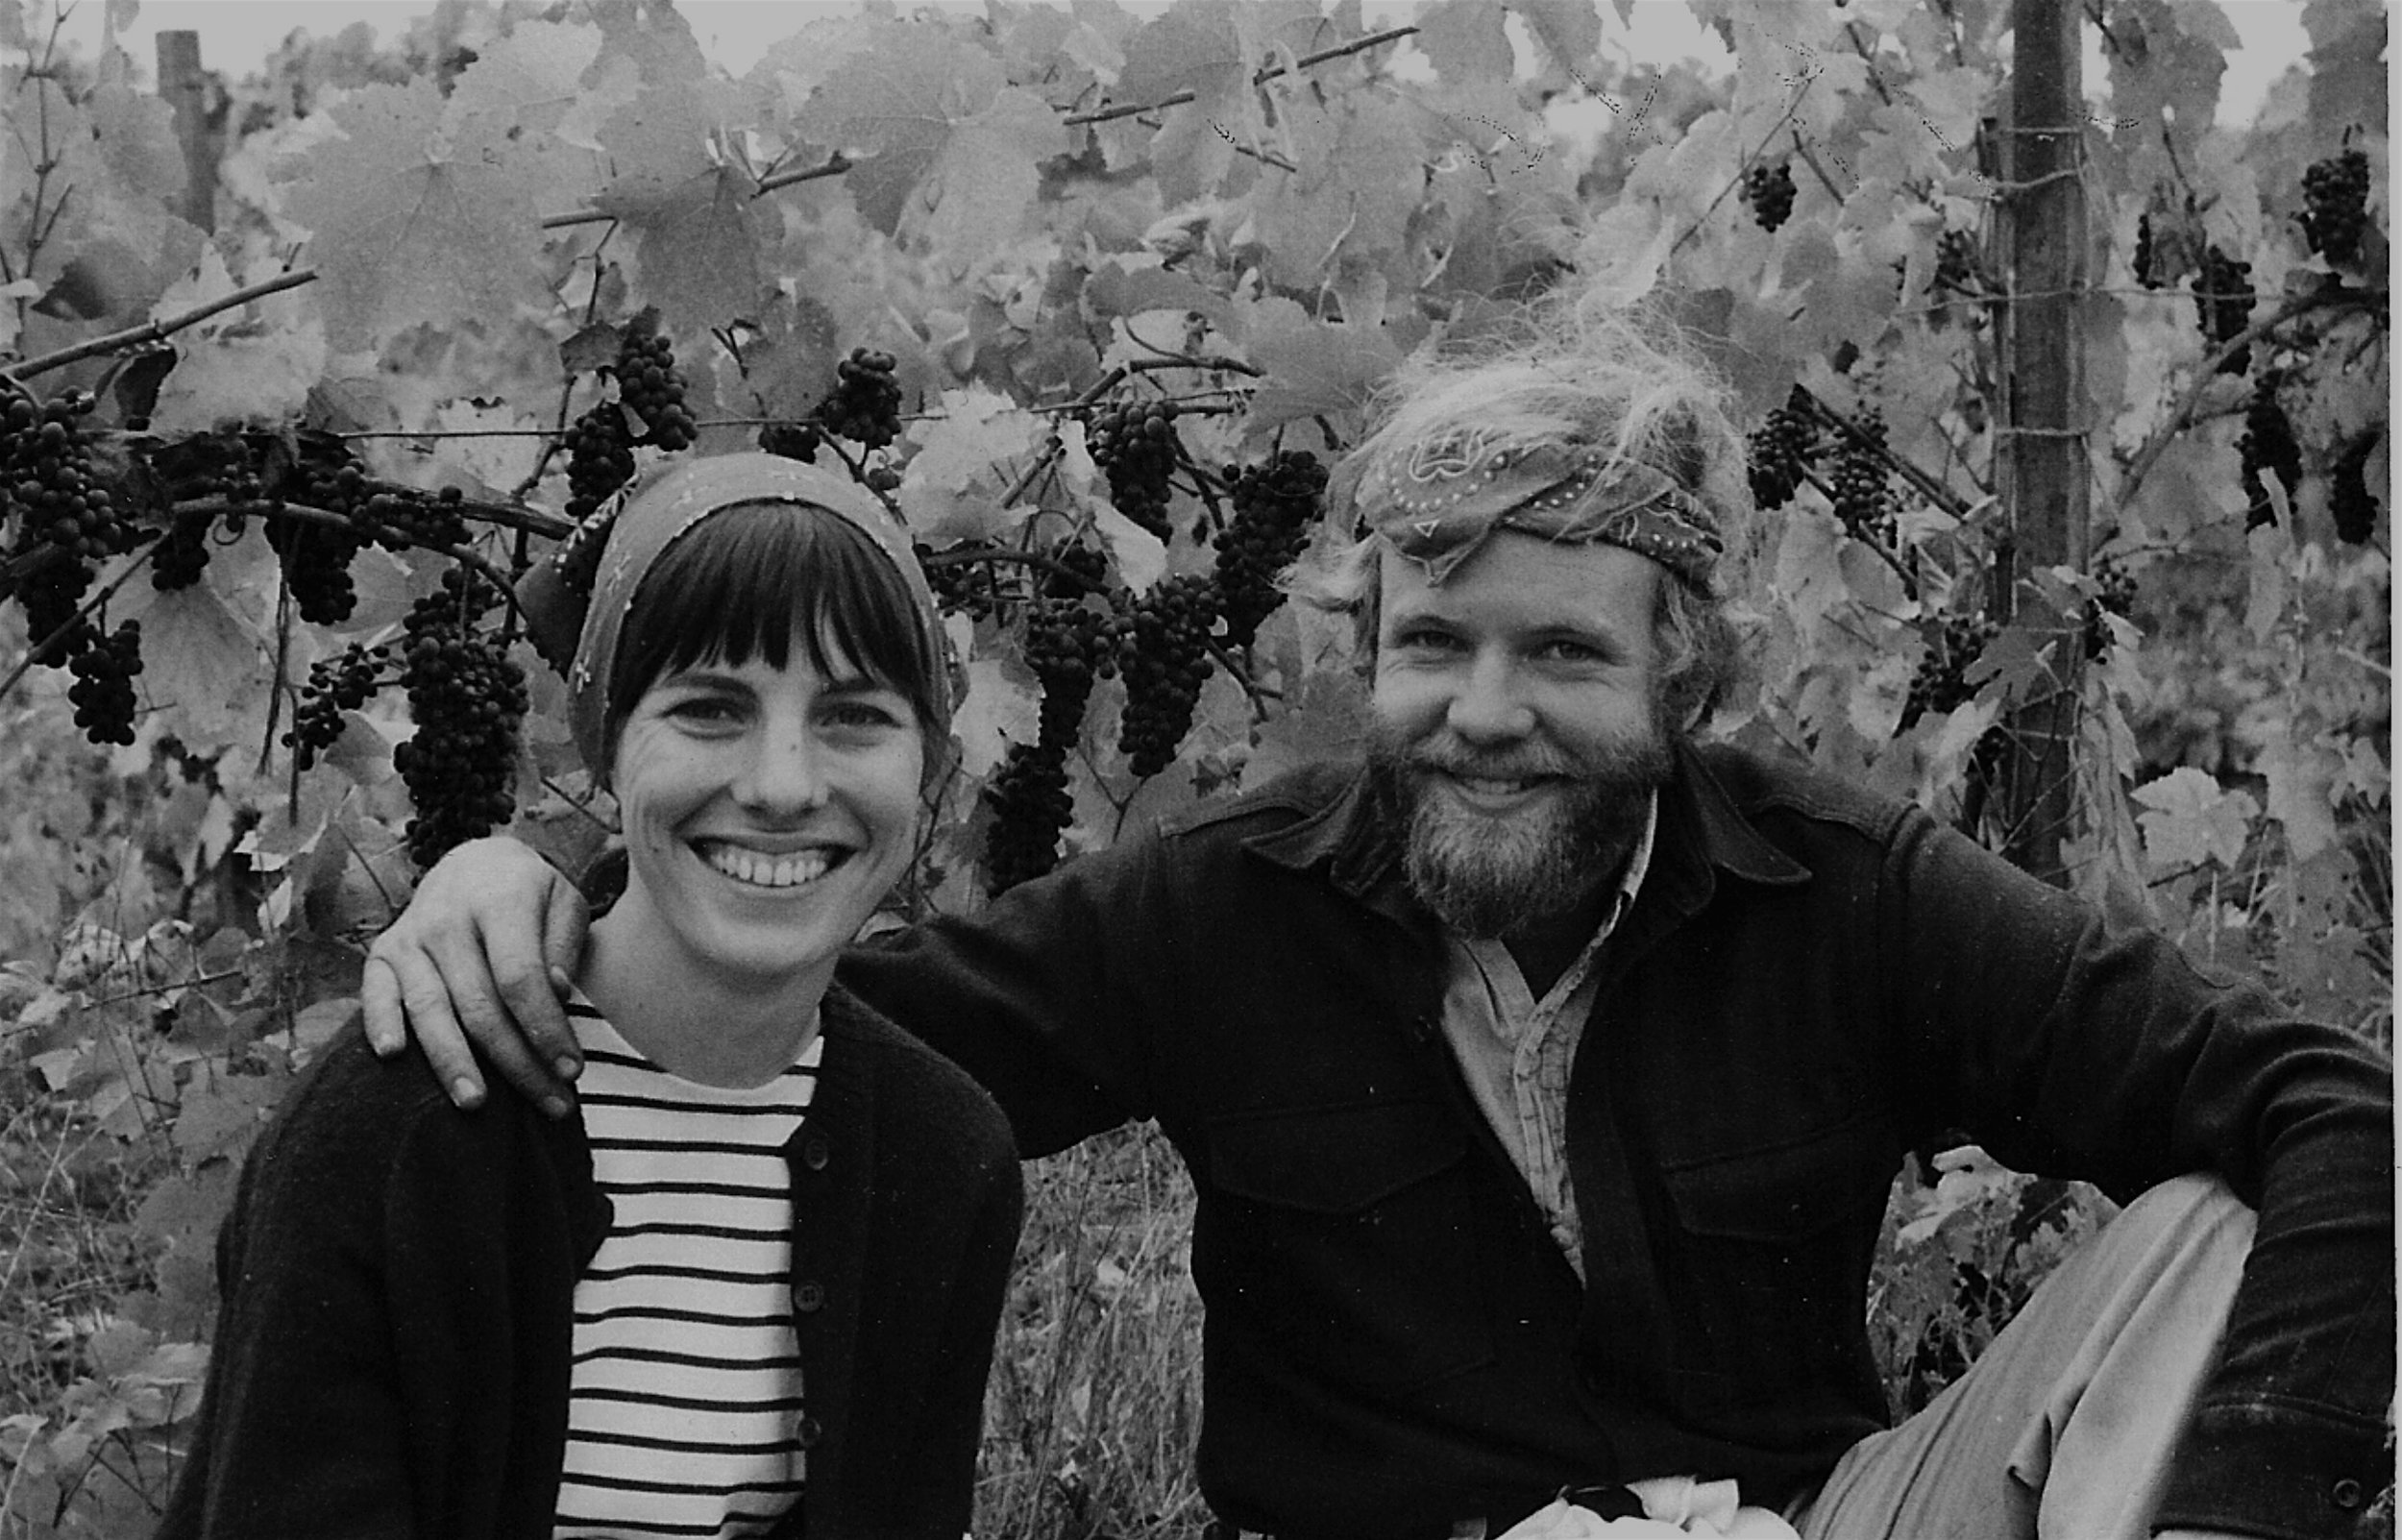 Epic picture here of The Eyrie Vineyards founders, David and Diana Lett.